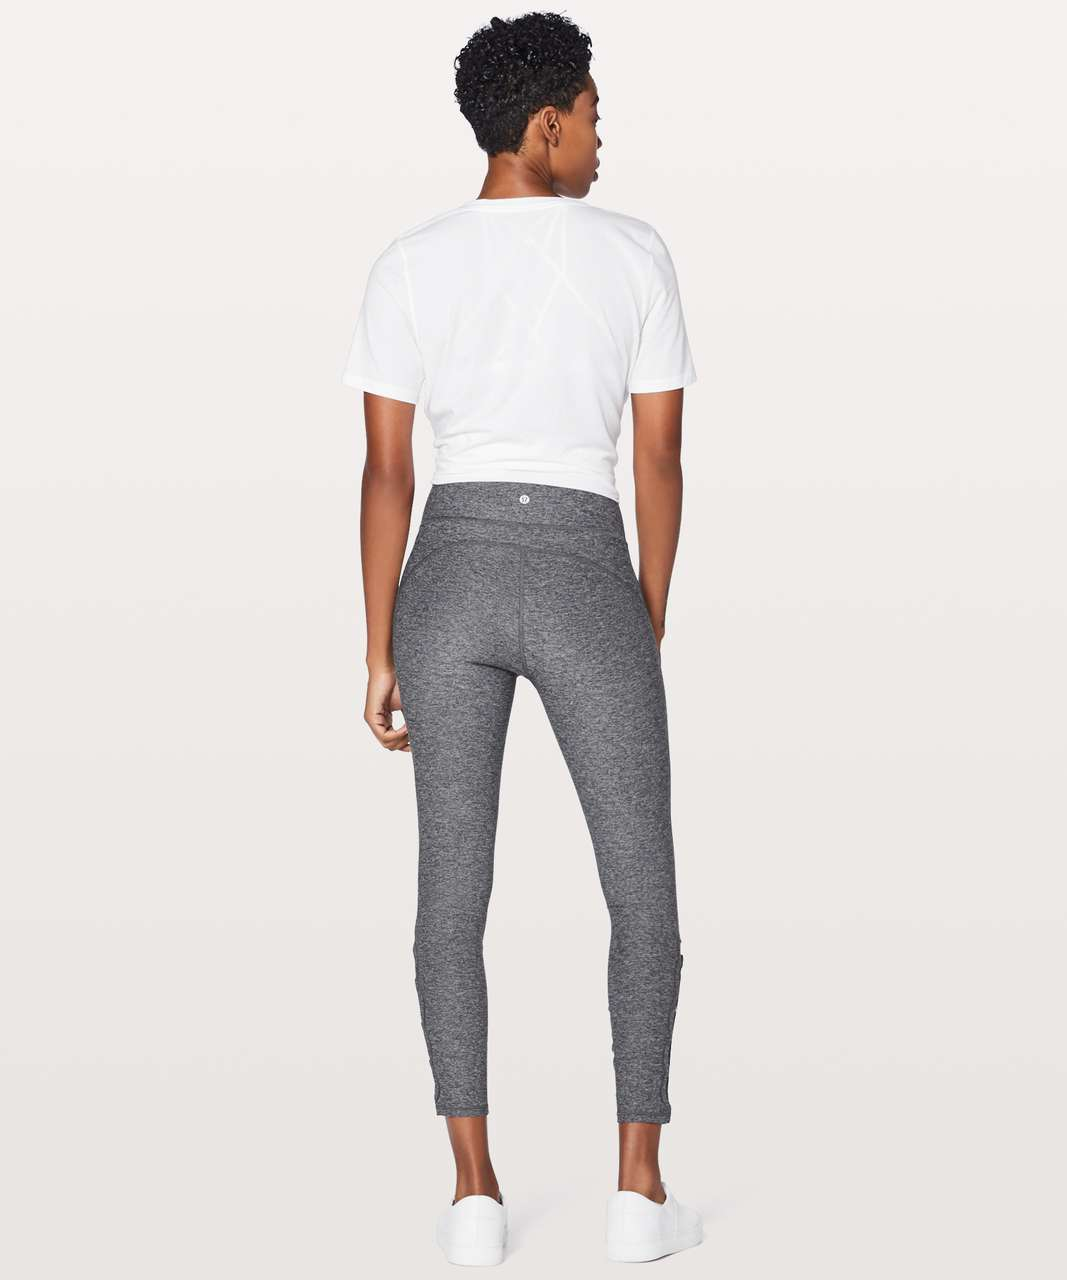 "Lululemon Tied To It 7/8 Tight 25"" - Heathered Black / Dark Carbon"